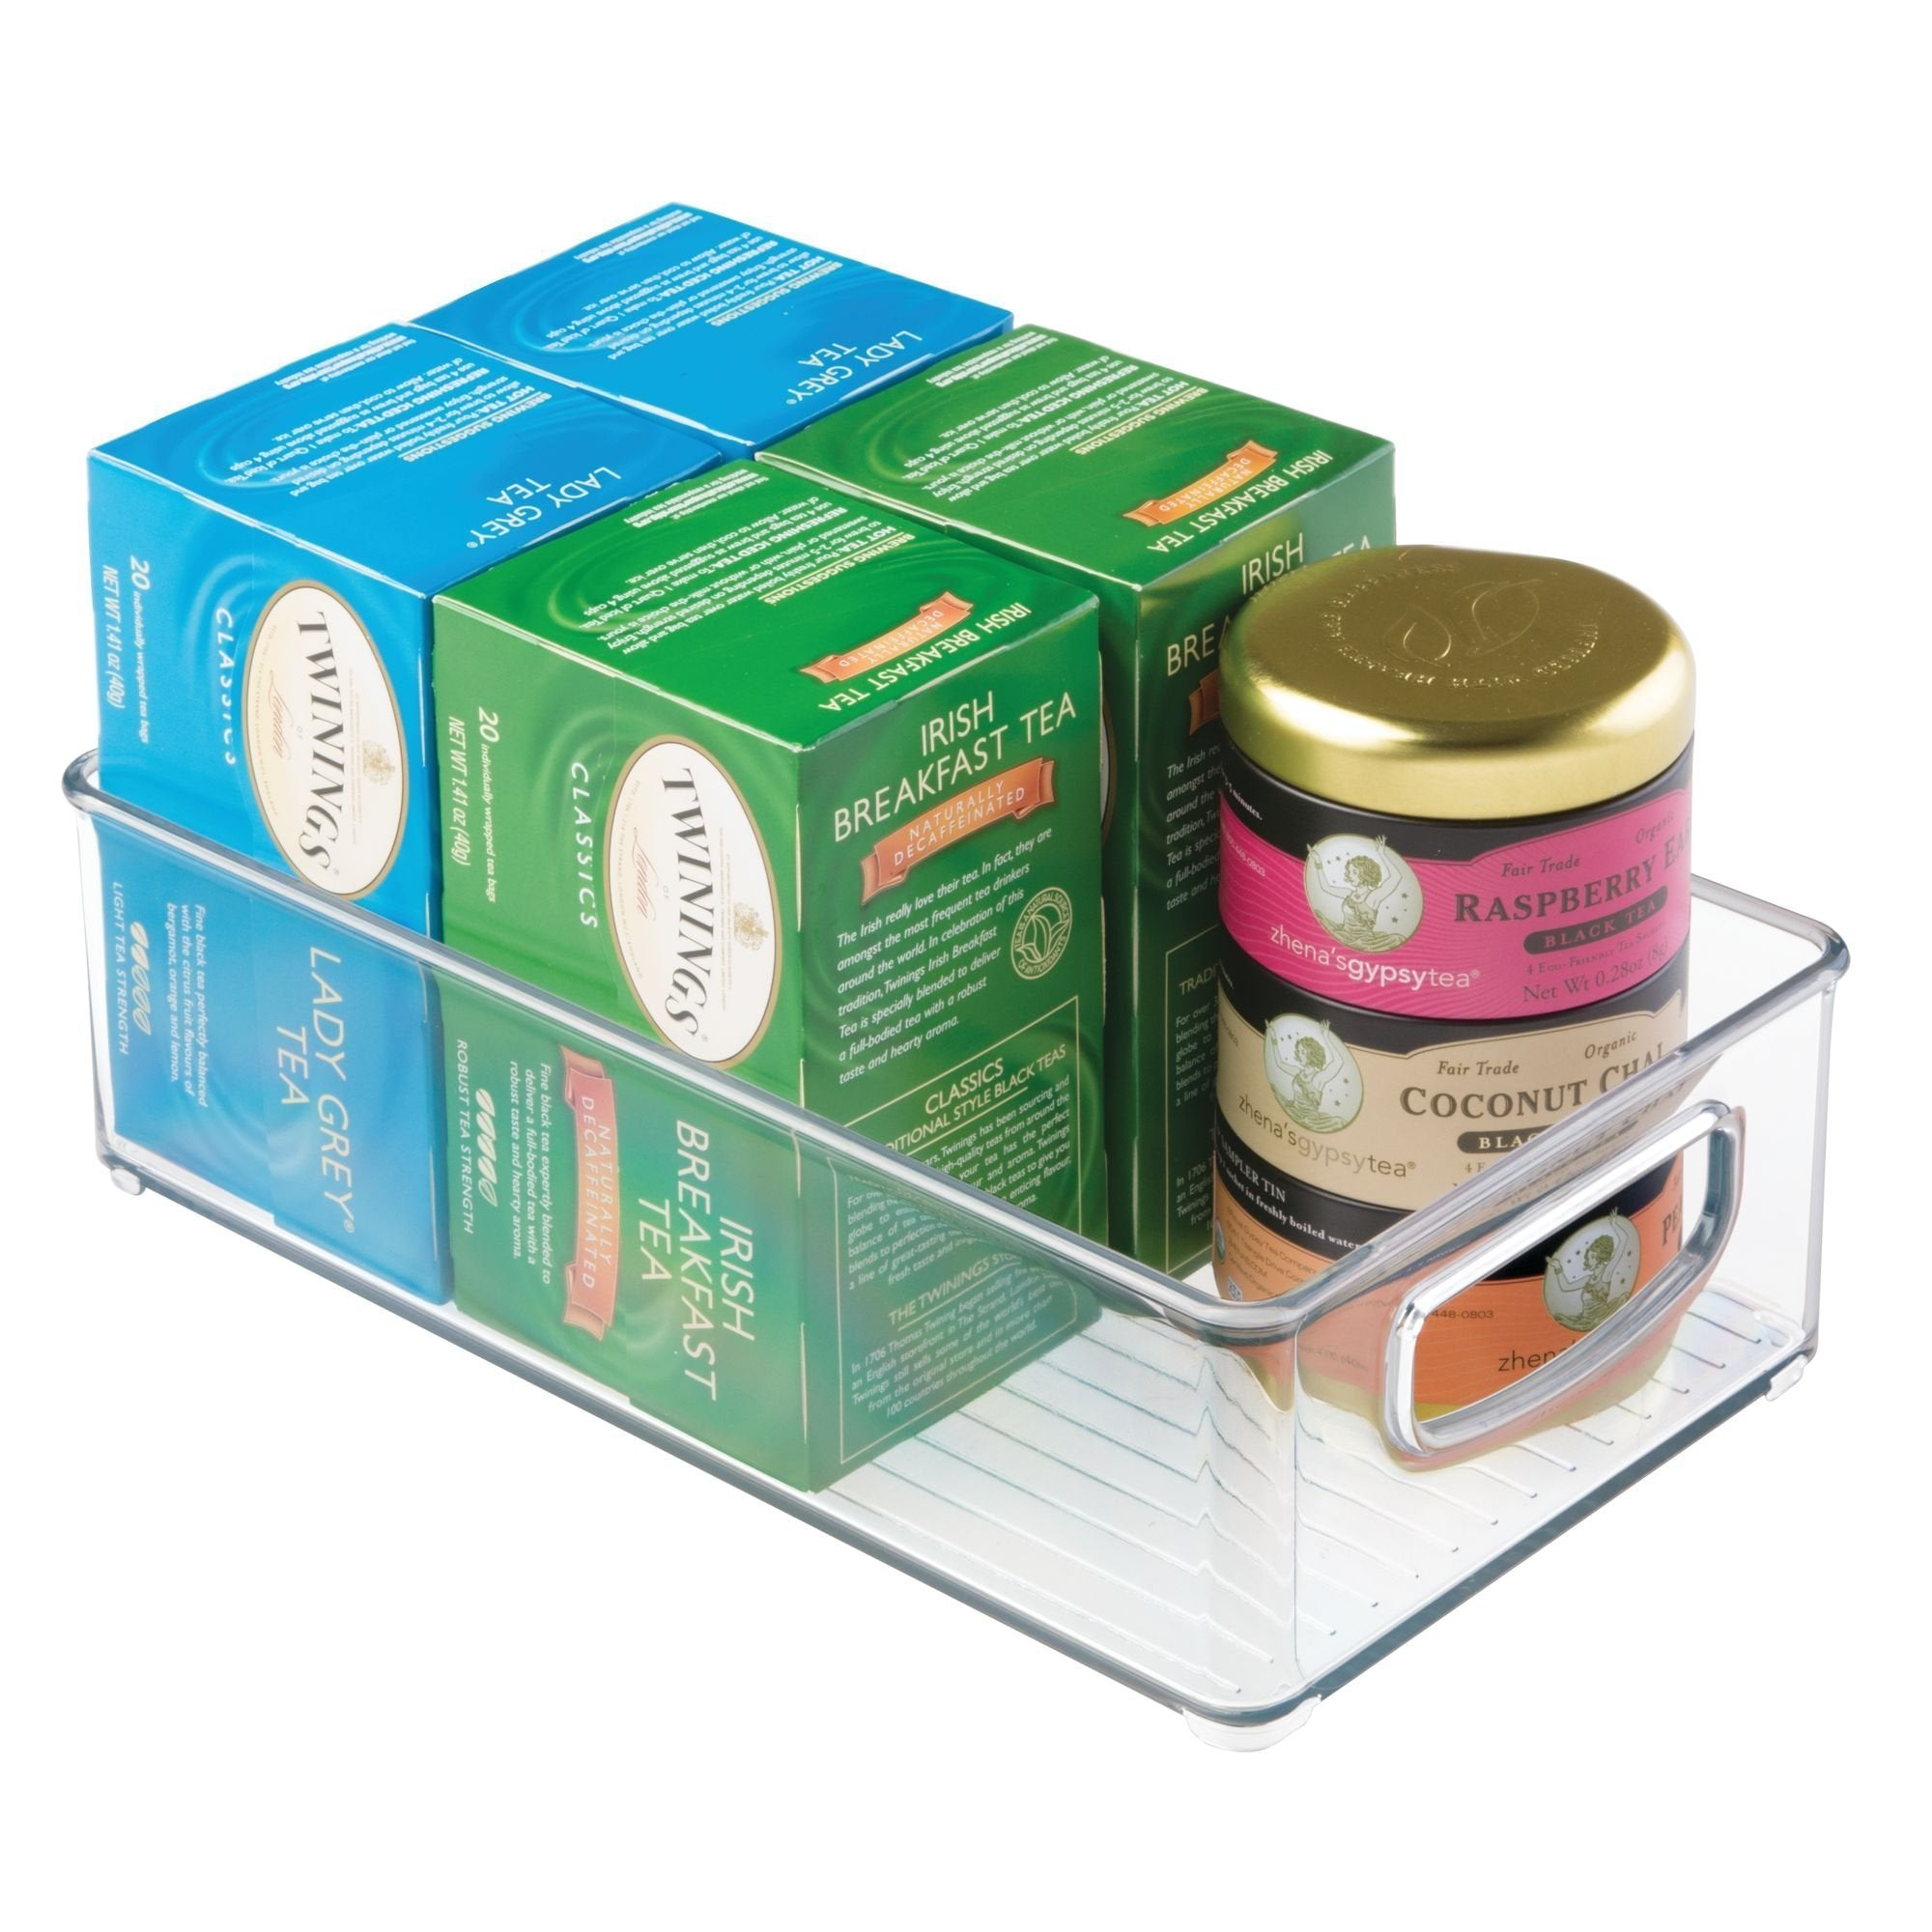 Budget friendly idesign plastic storage bin with handles for kitchen fridge freezer pantry and cabinet organization bpa free set clear